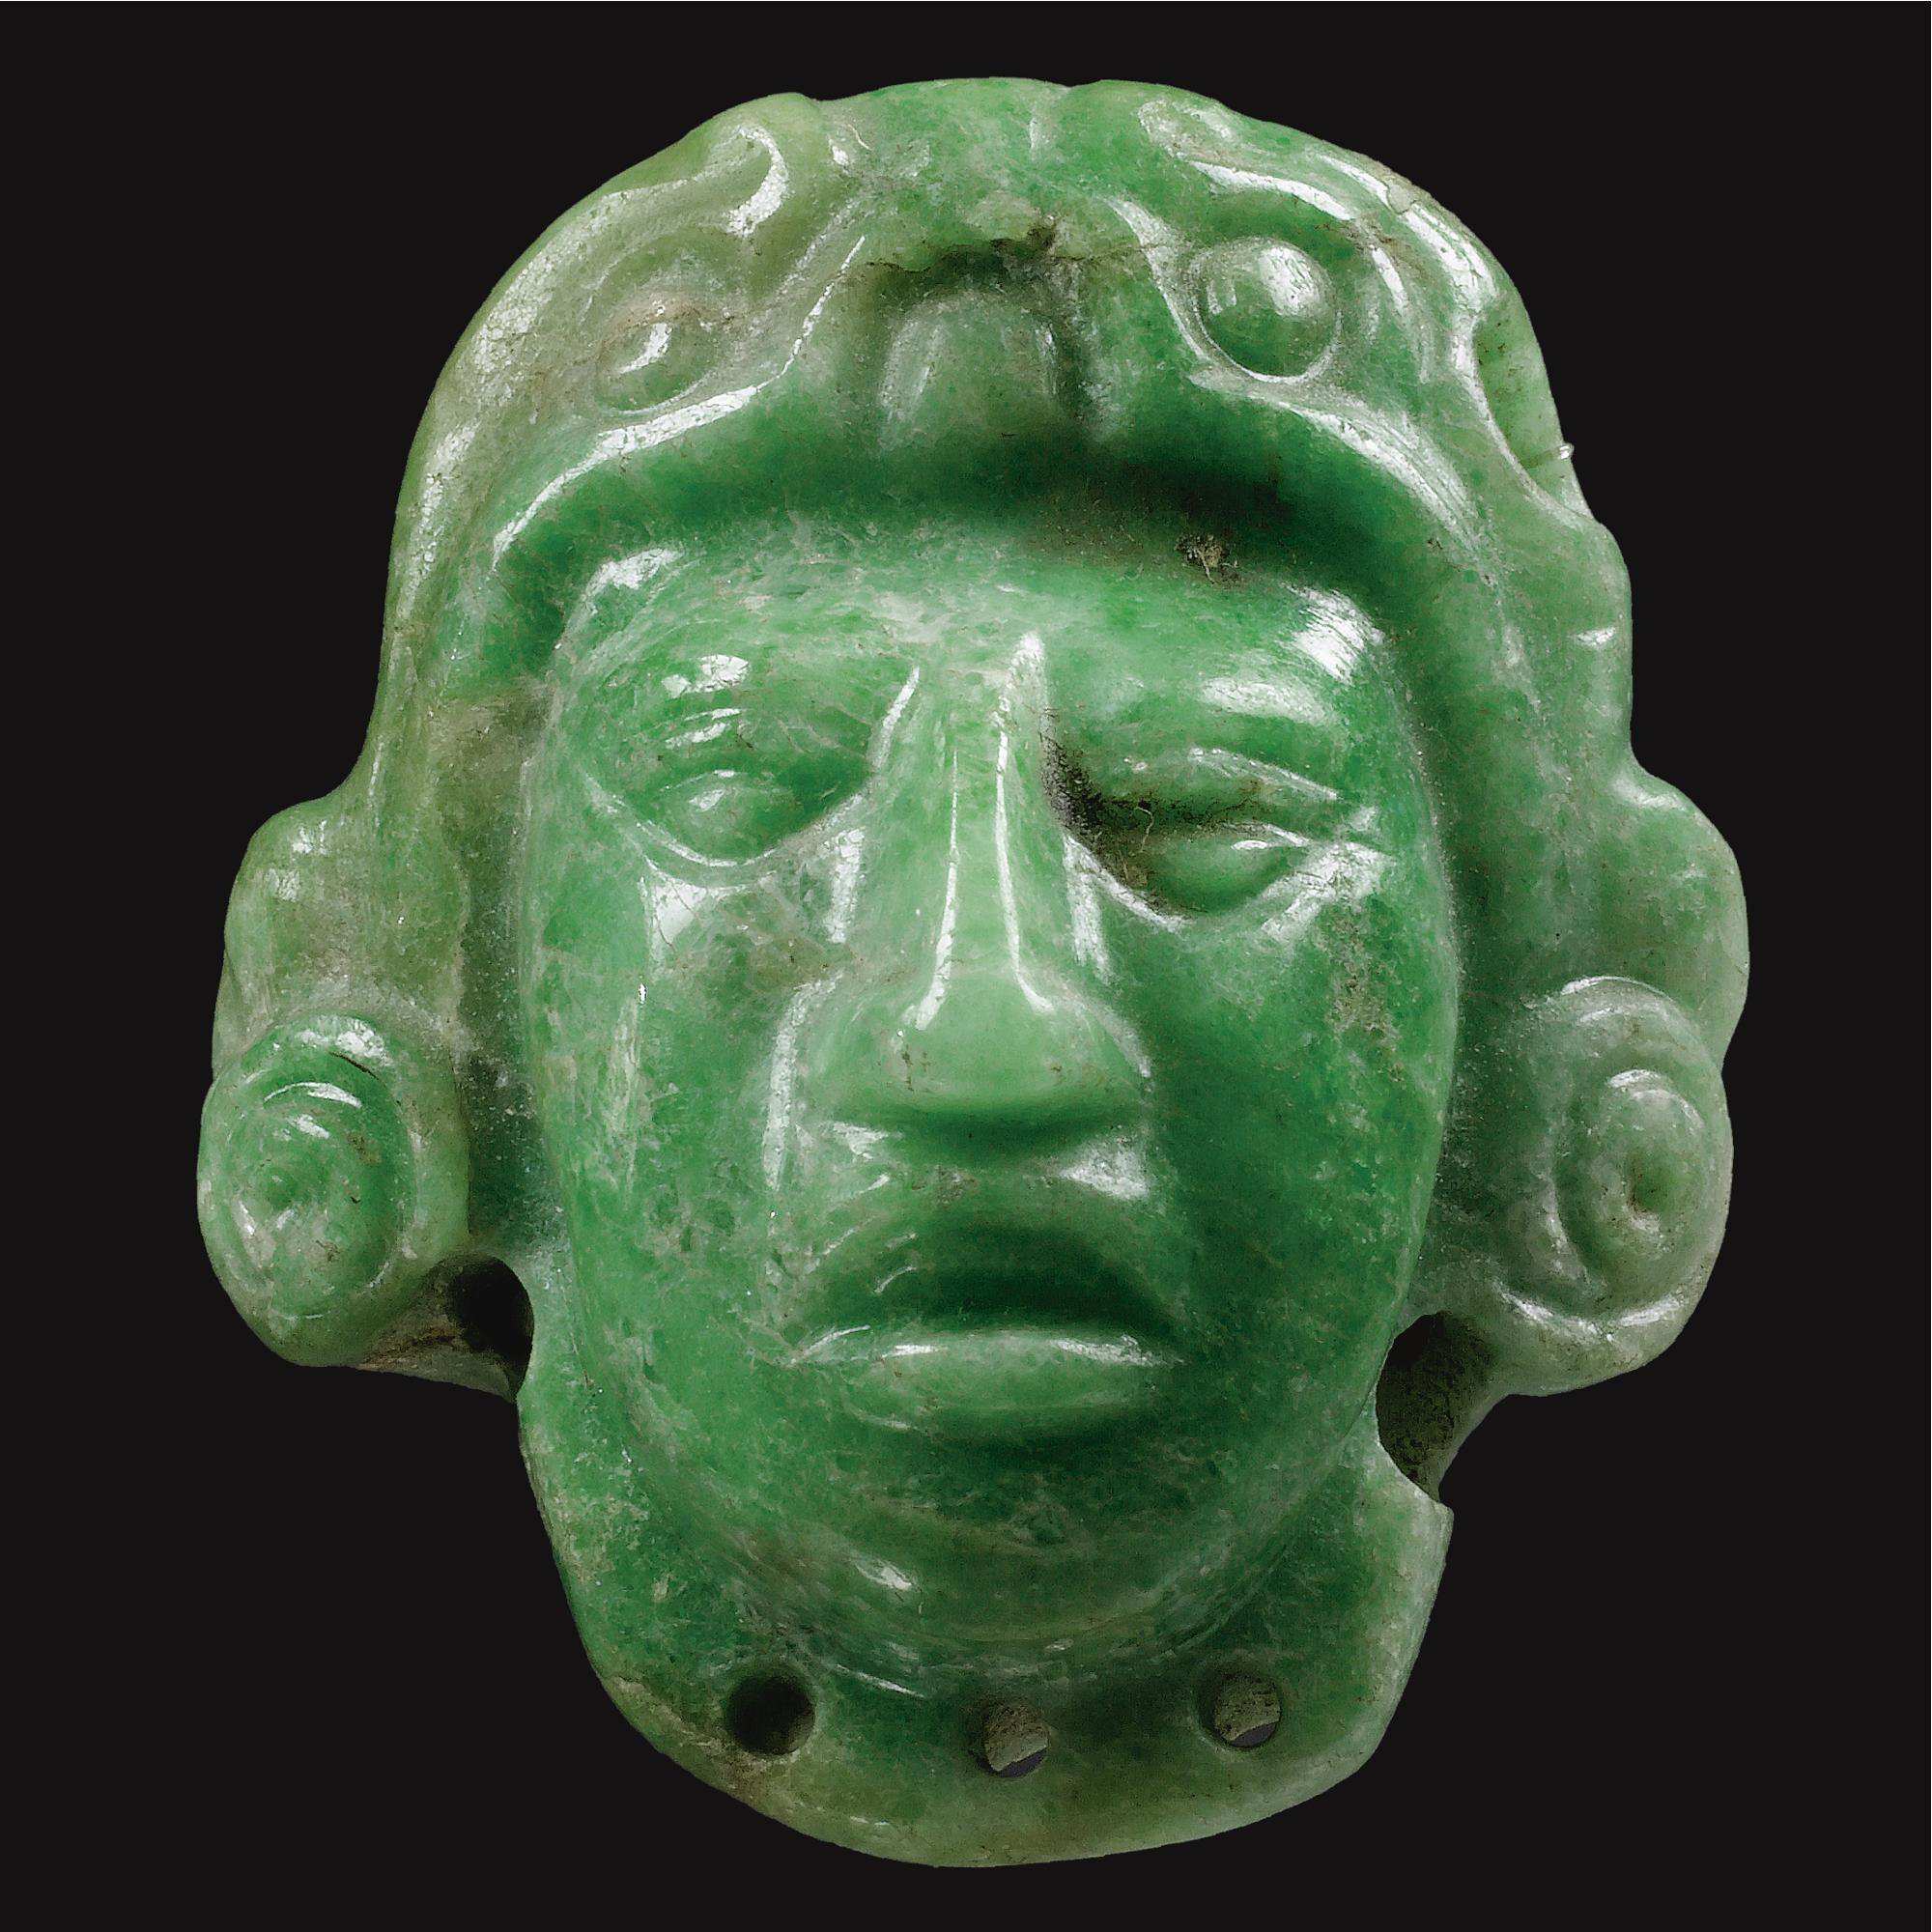 Mayan jade head sculpture.